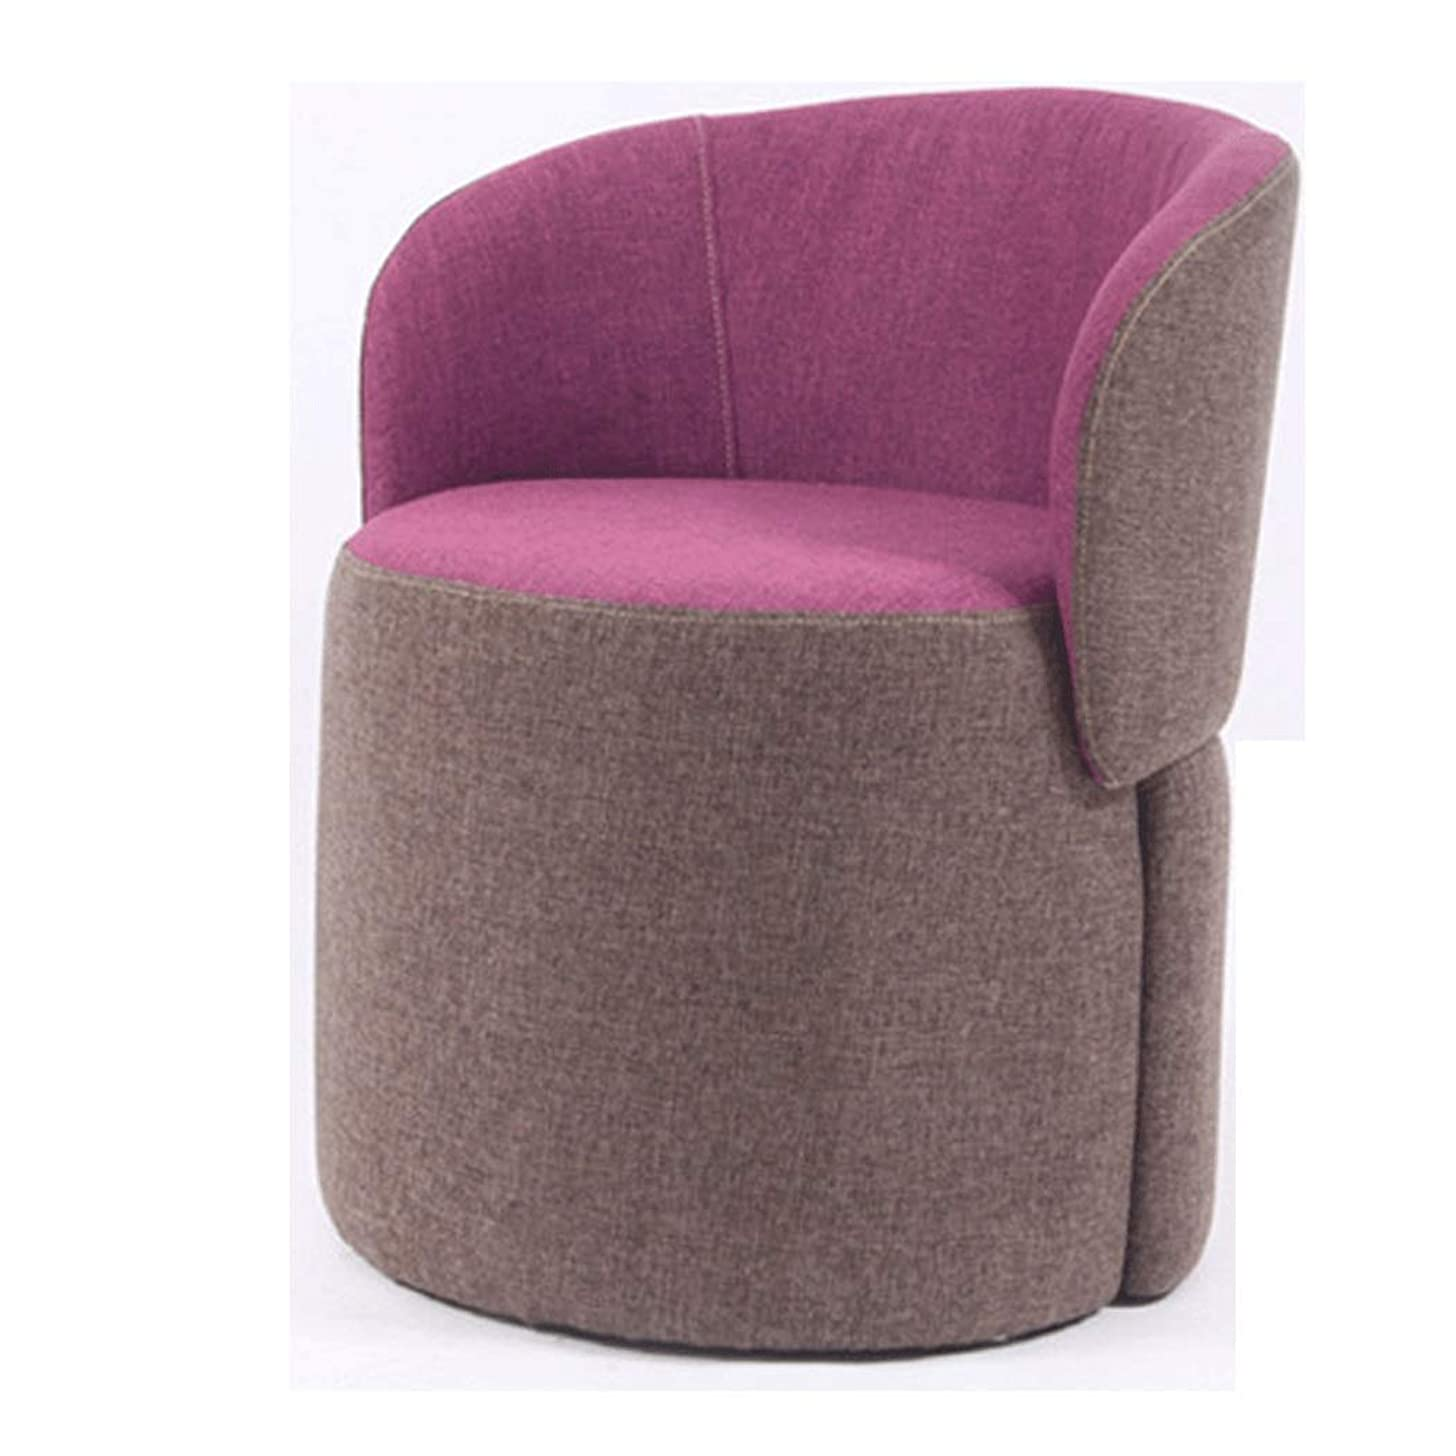 YONGYONG-hammock Change Shoes Stool Solid Wood Stool Fabric Backrest Sofa Chair Modern Minimalist Japanese Balcony Sofa (Color : Purple, Size : 5066CM)